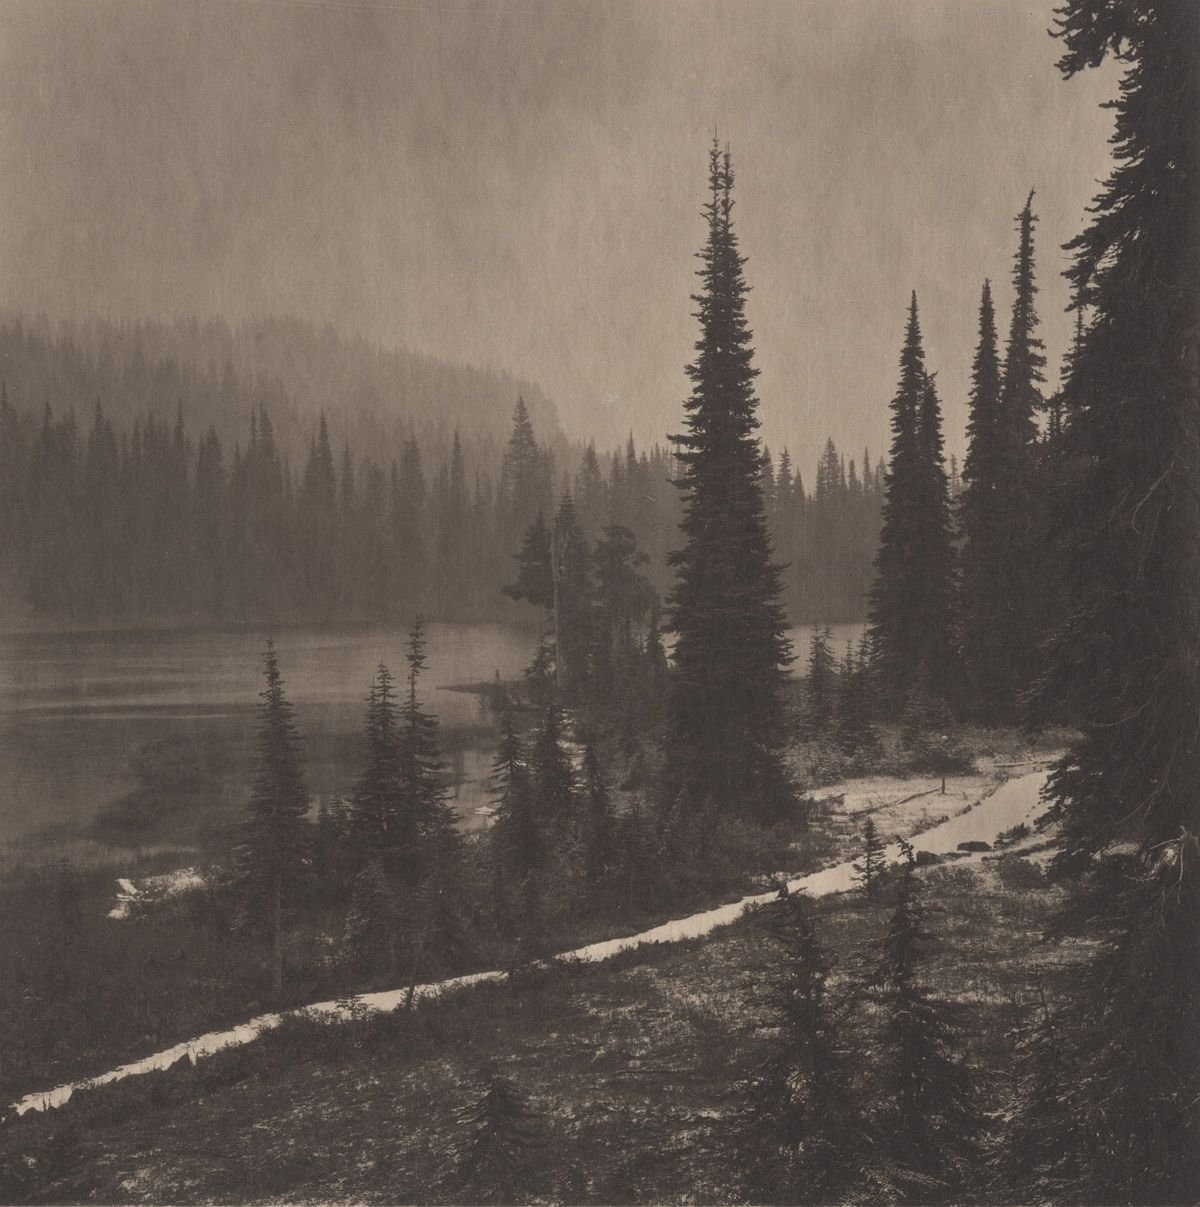 Pacific Northwest: Mt. Rainer #2, 2011/2012 from Silent Respiration of Forests - Pacific Northwest